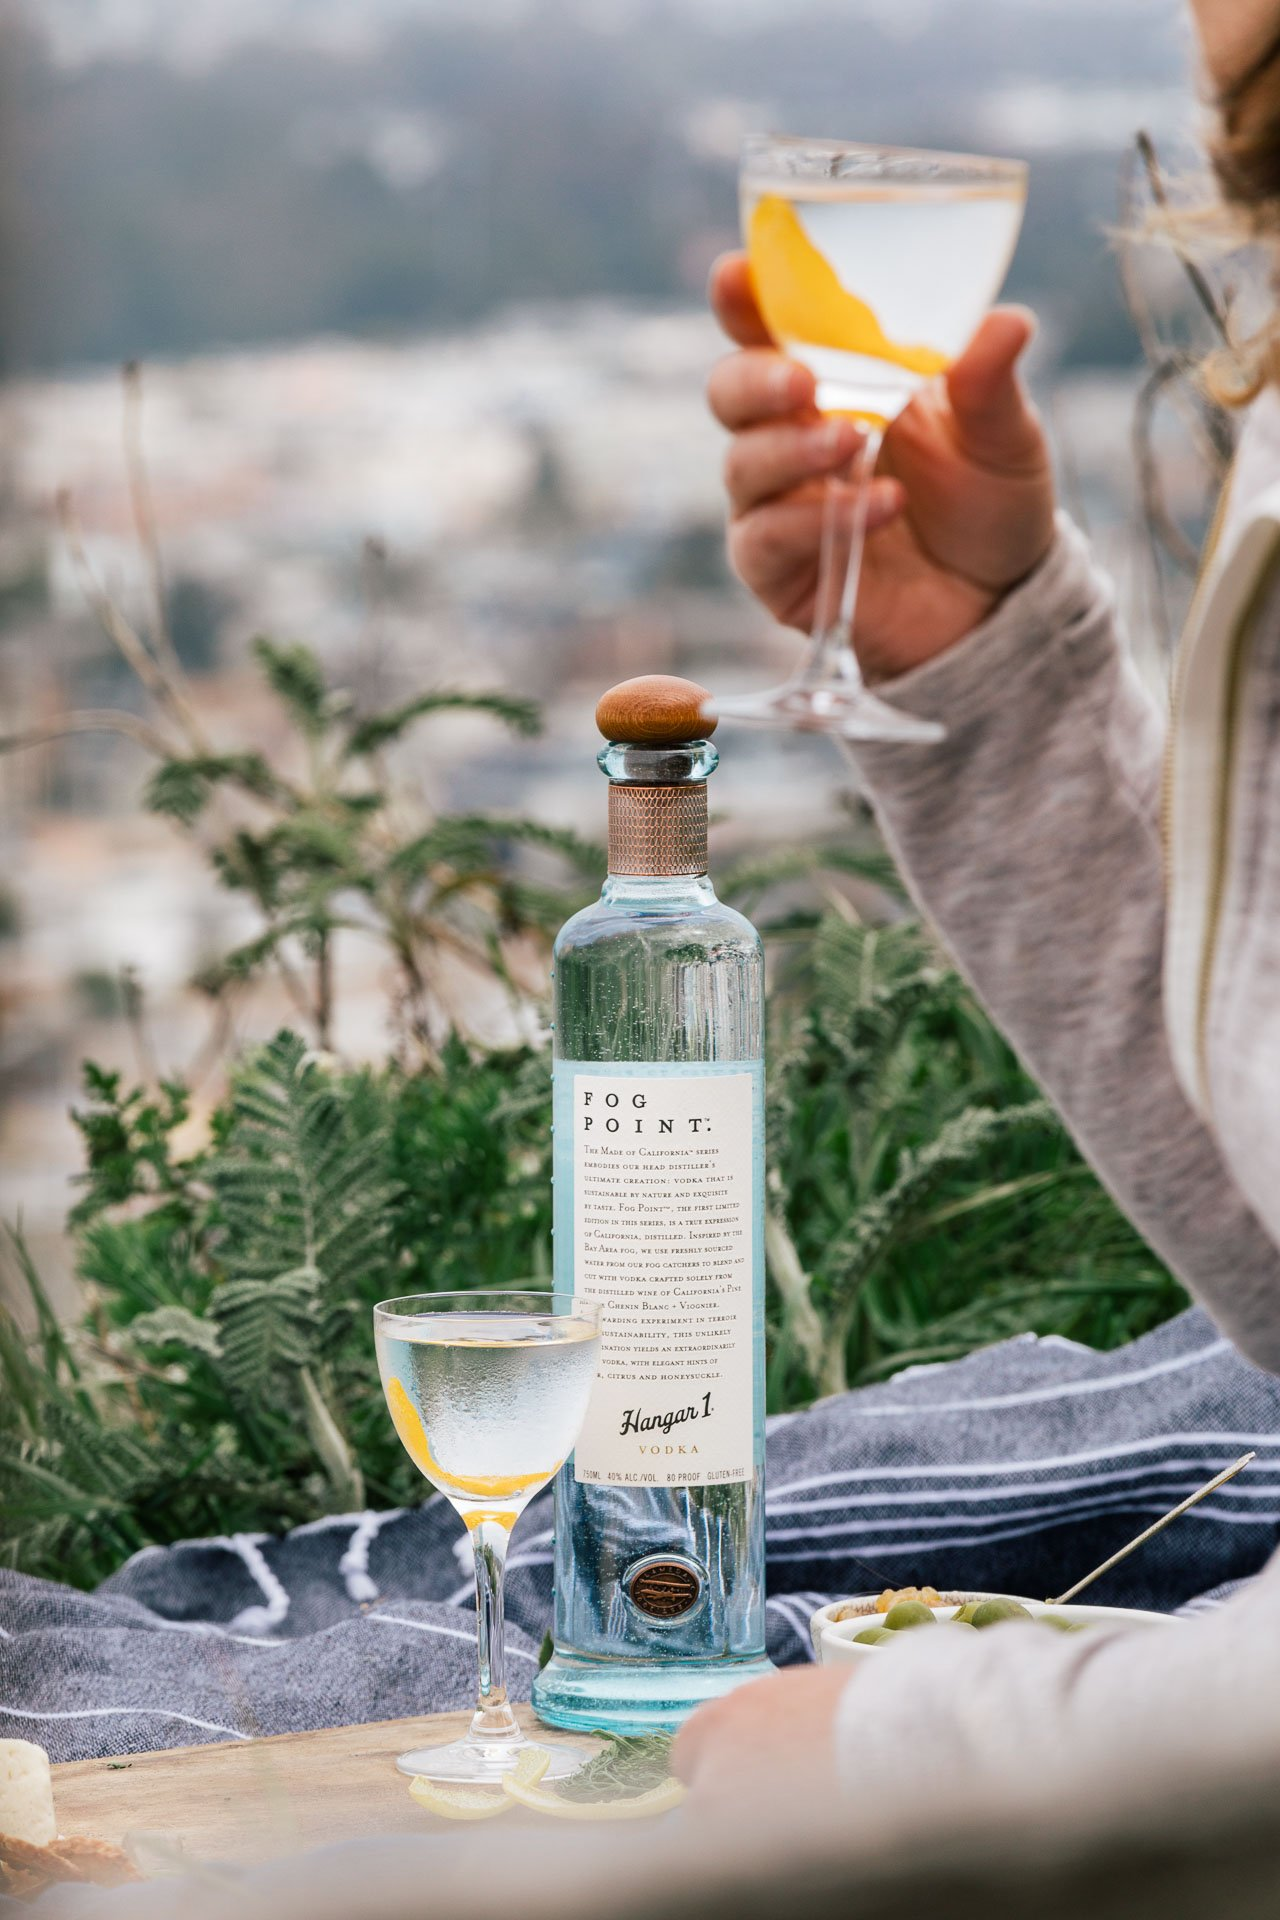 Fog Point Vodka Martini | HonestlyYUM (honestlyyum.com)